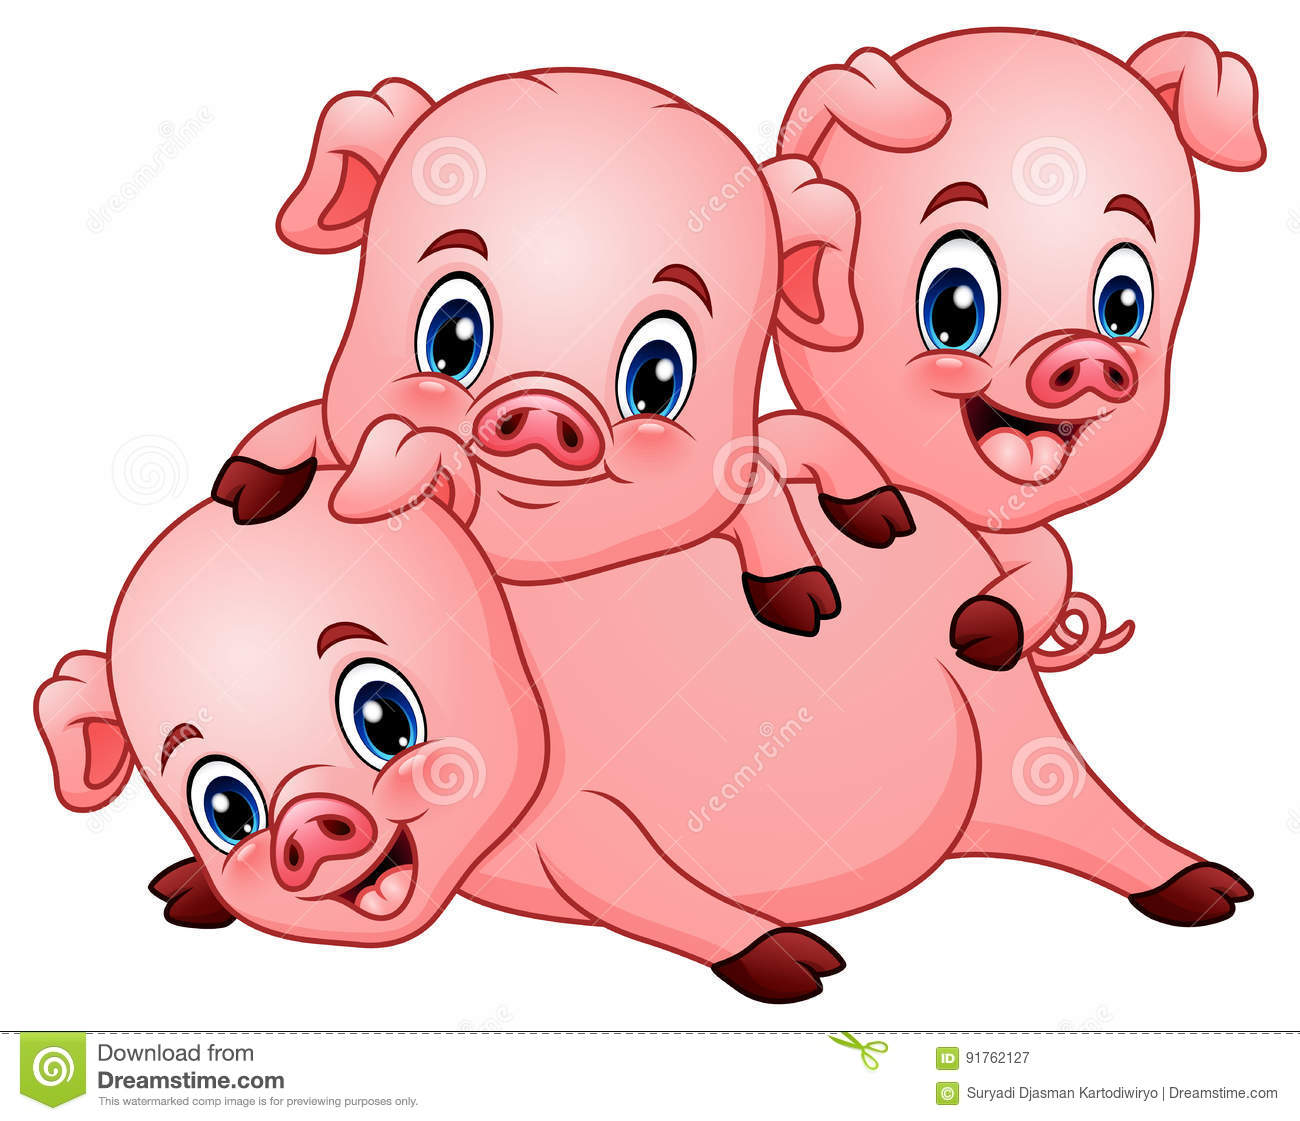 Three little pig cartoon stock vector. Illustration of babyish ...